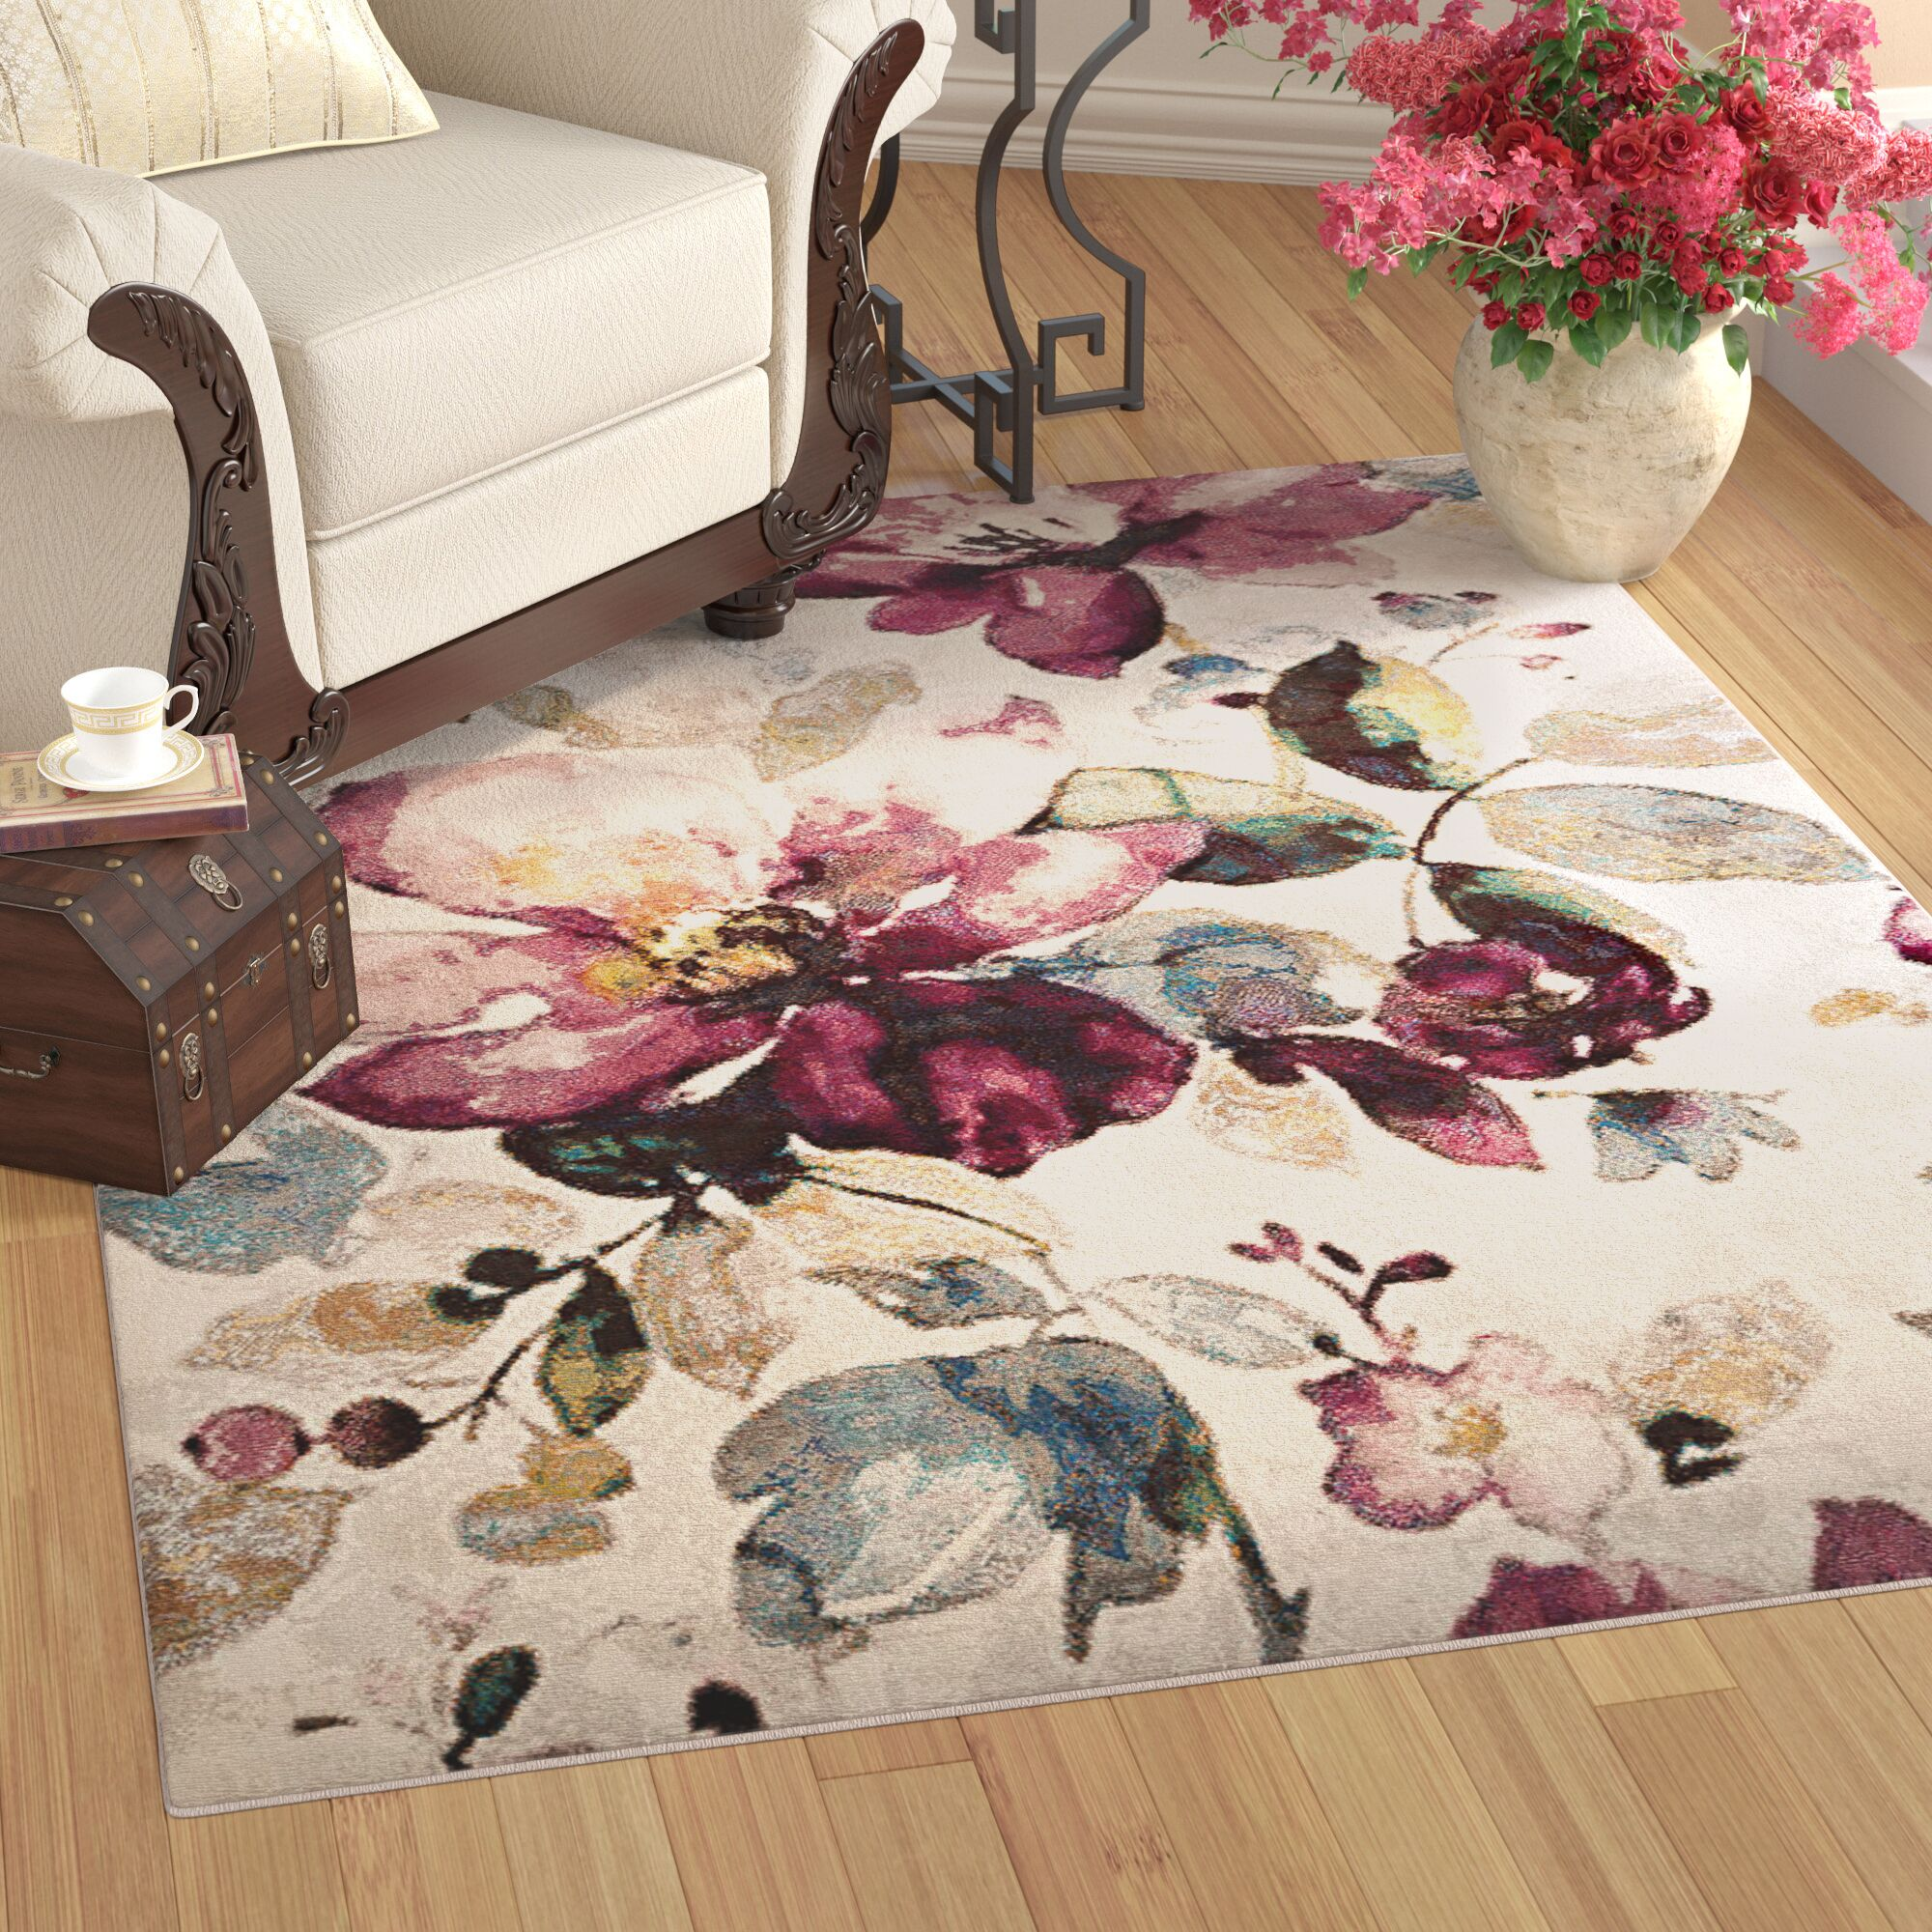 Mcpeters Floral Garden Ivory/Purple Area Rug Rug Size: Rectangle 7'10